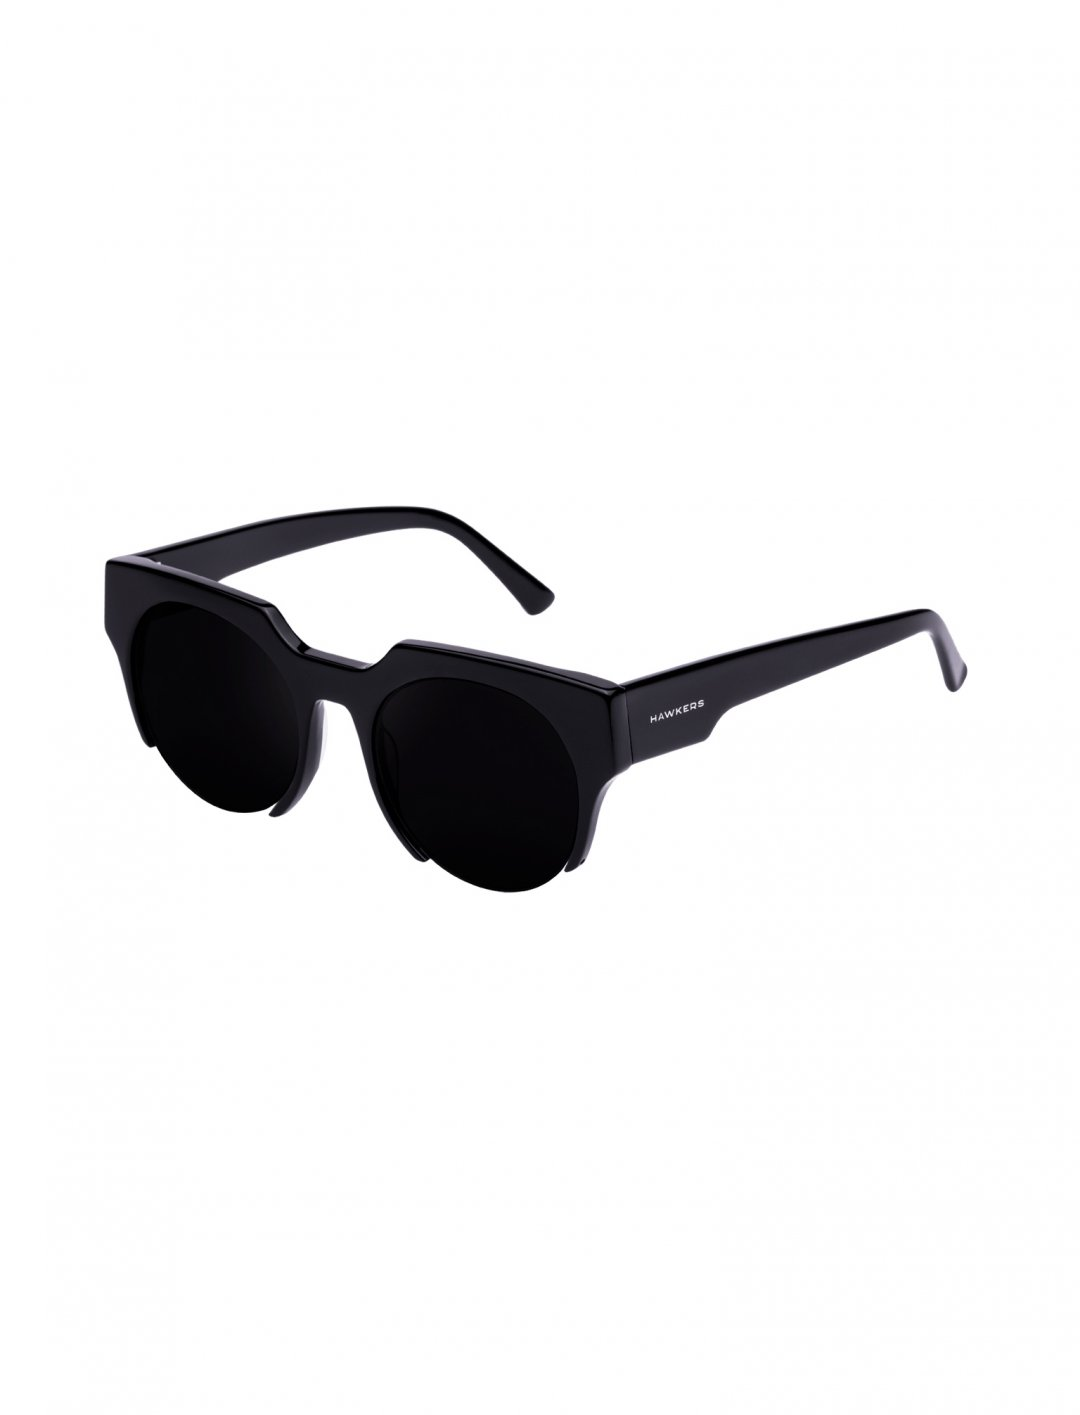 "Zayn's Black Sunglasses {""id"":16,""product_section_id"":1,""name"":""Accessories"",""order"":15} Hawkers Co."